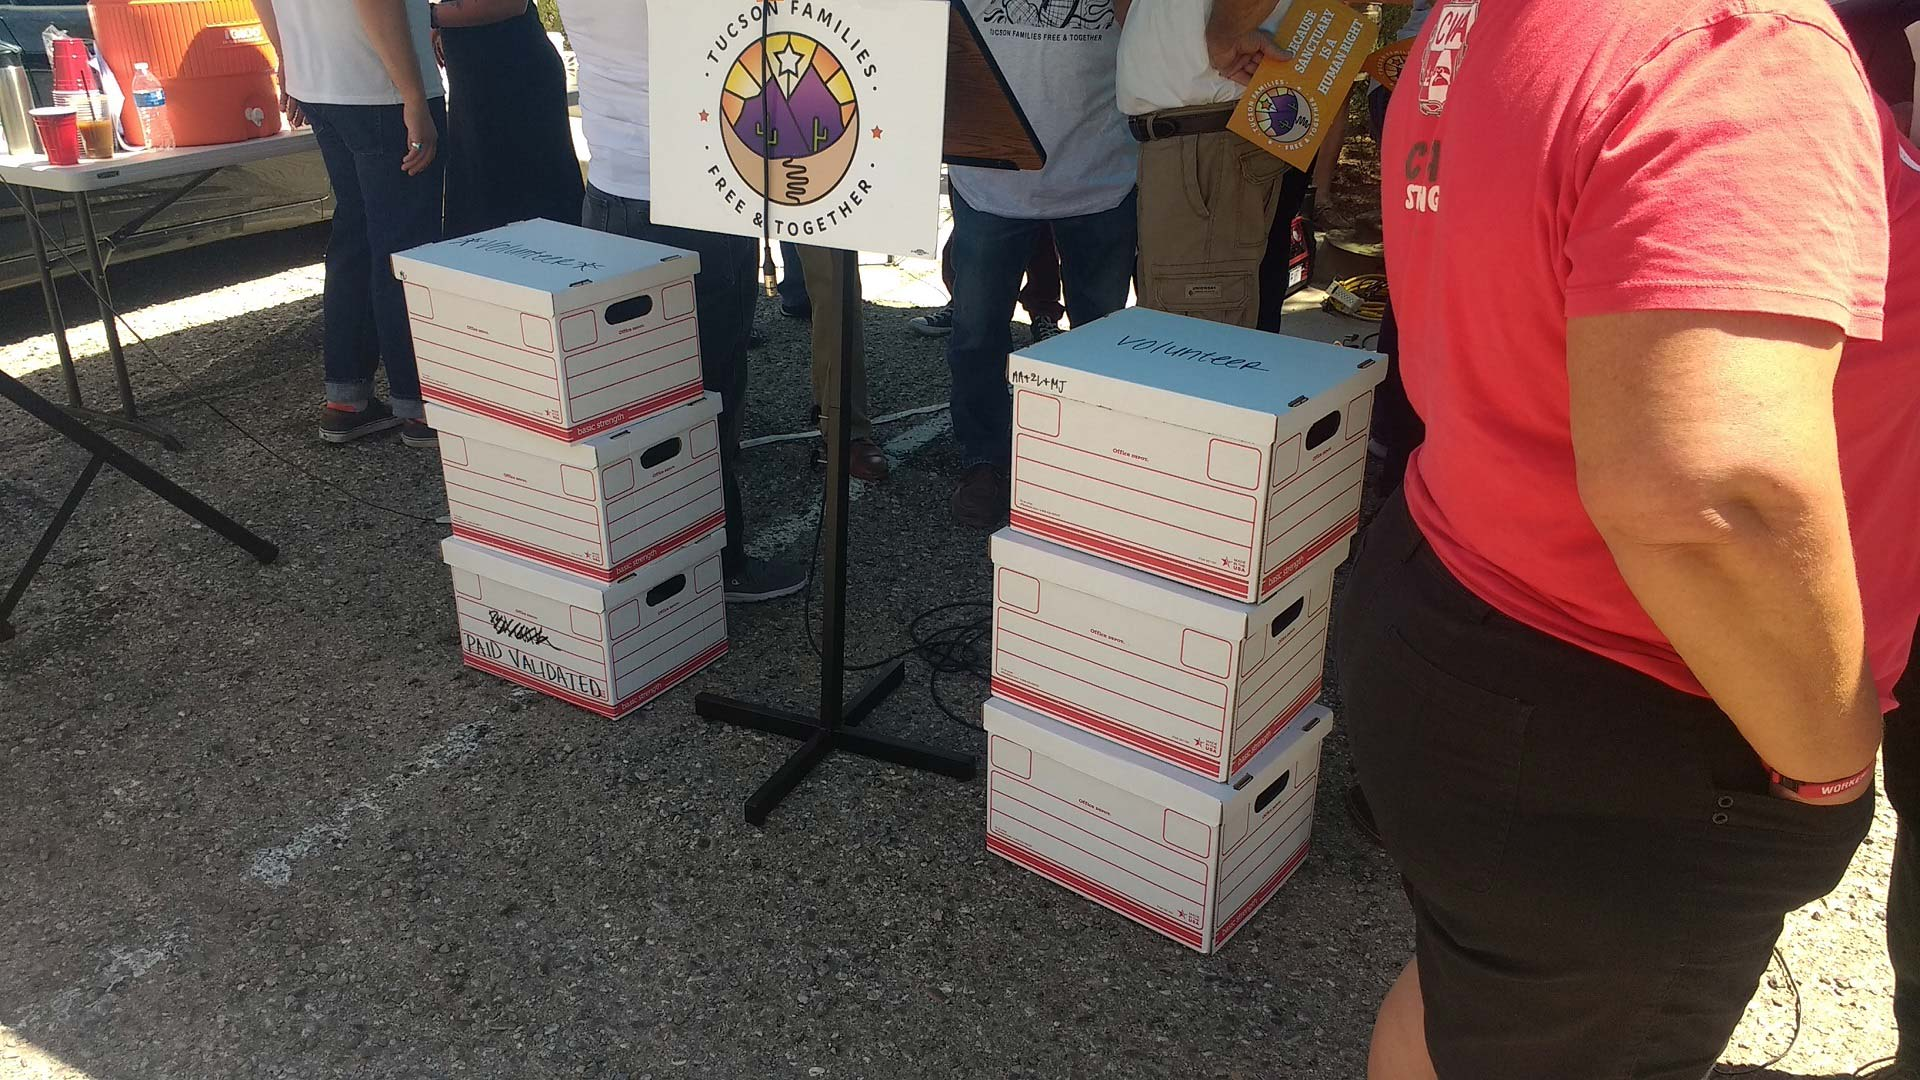 Sanctuary initiative boxes